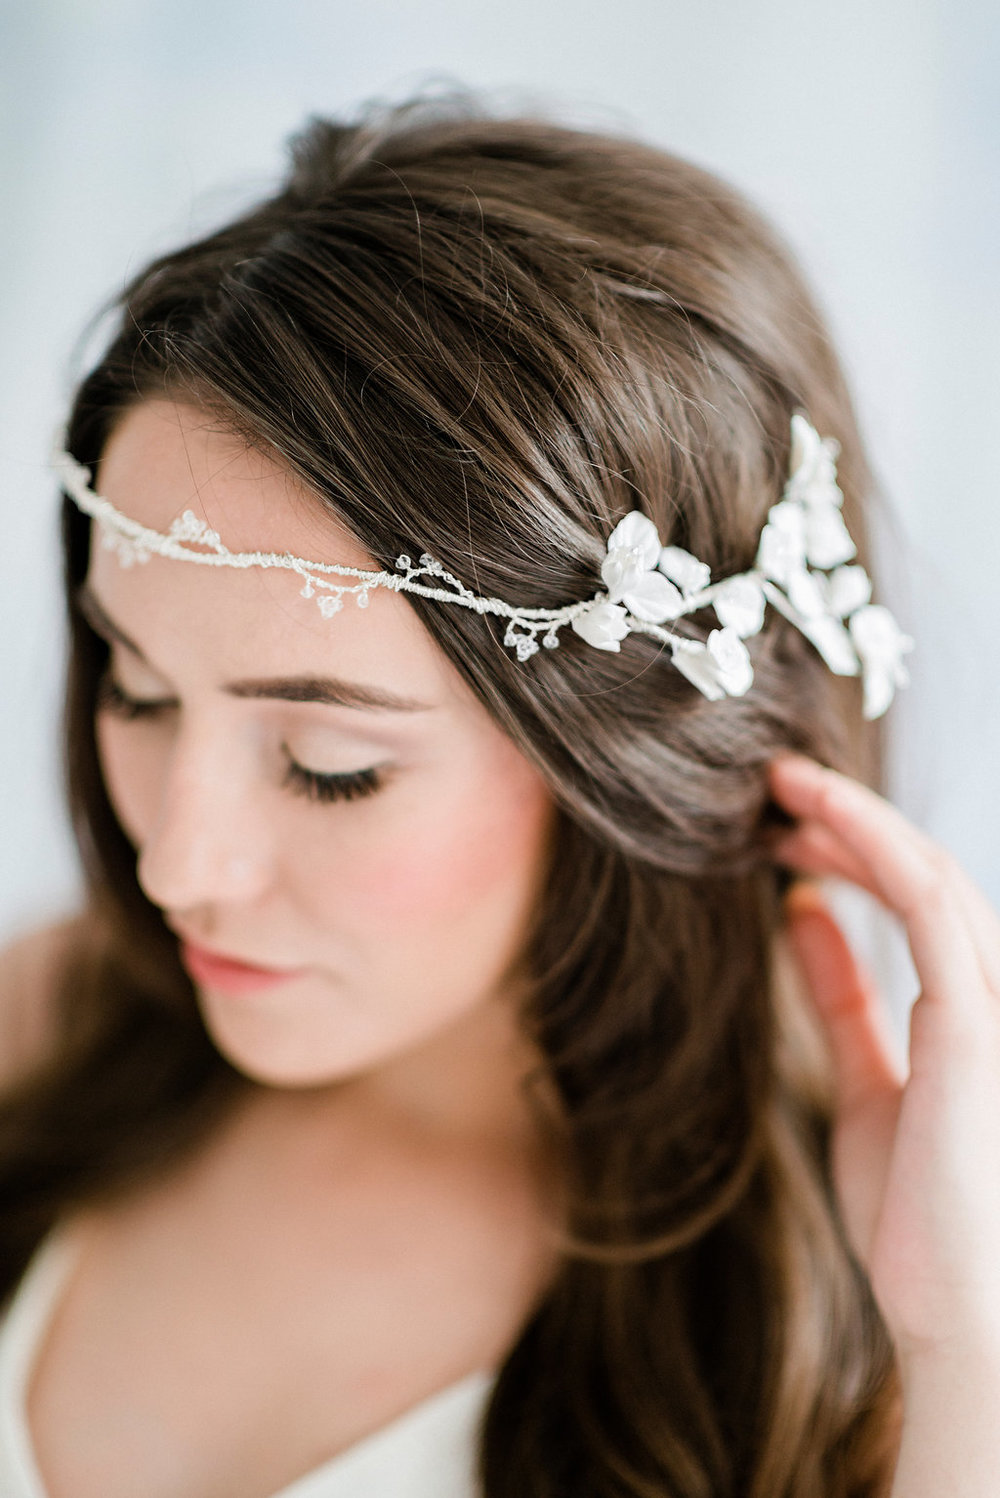 Bramble half crown - Team Beach with the bramble half crown handmade by PSwithlove for a minimalist boho look.